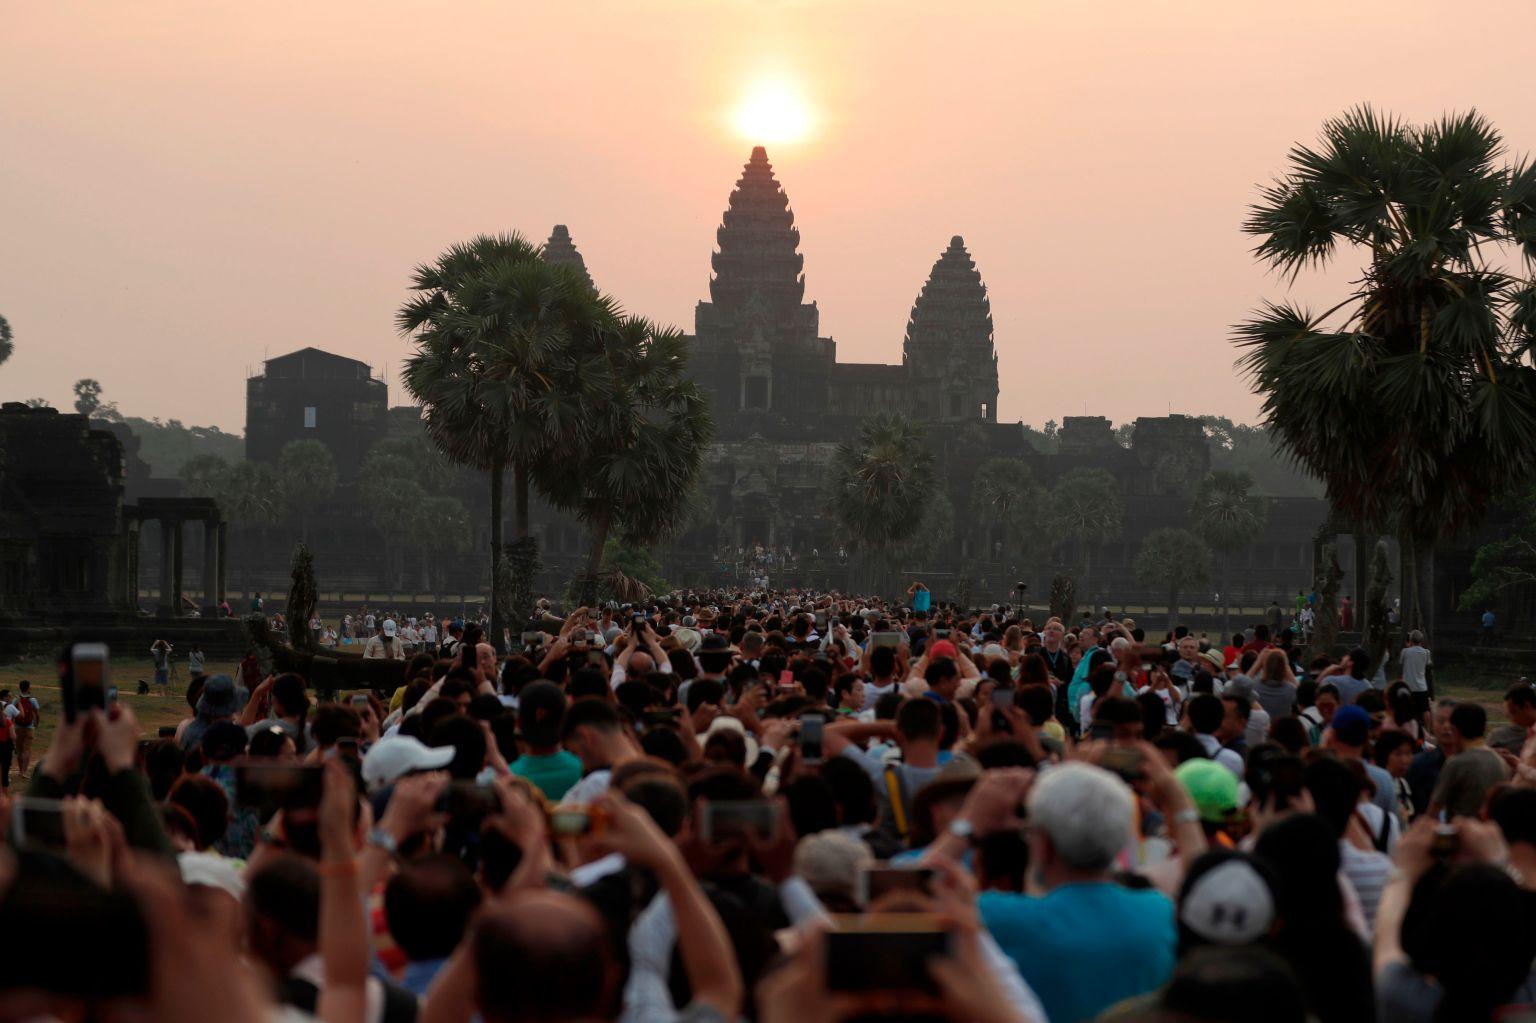 TOPSHOT - In this photograph taken on March 22, 2018, the sun rises over the central stupa of Angkor Wat temple in Siem Reap.  The well preserved remains of the Khmer Empire from the 9th to the 15th century is one of the most important archaeological sites in Southeast Asia and Cambodia's top tourist attraction.  / AFP PHOTO / -        (Photo credit should read -/AFP/Getty Images)